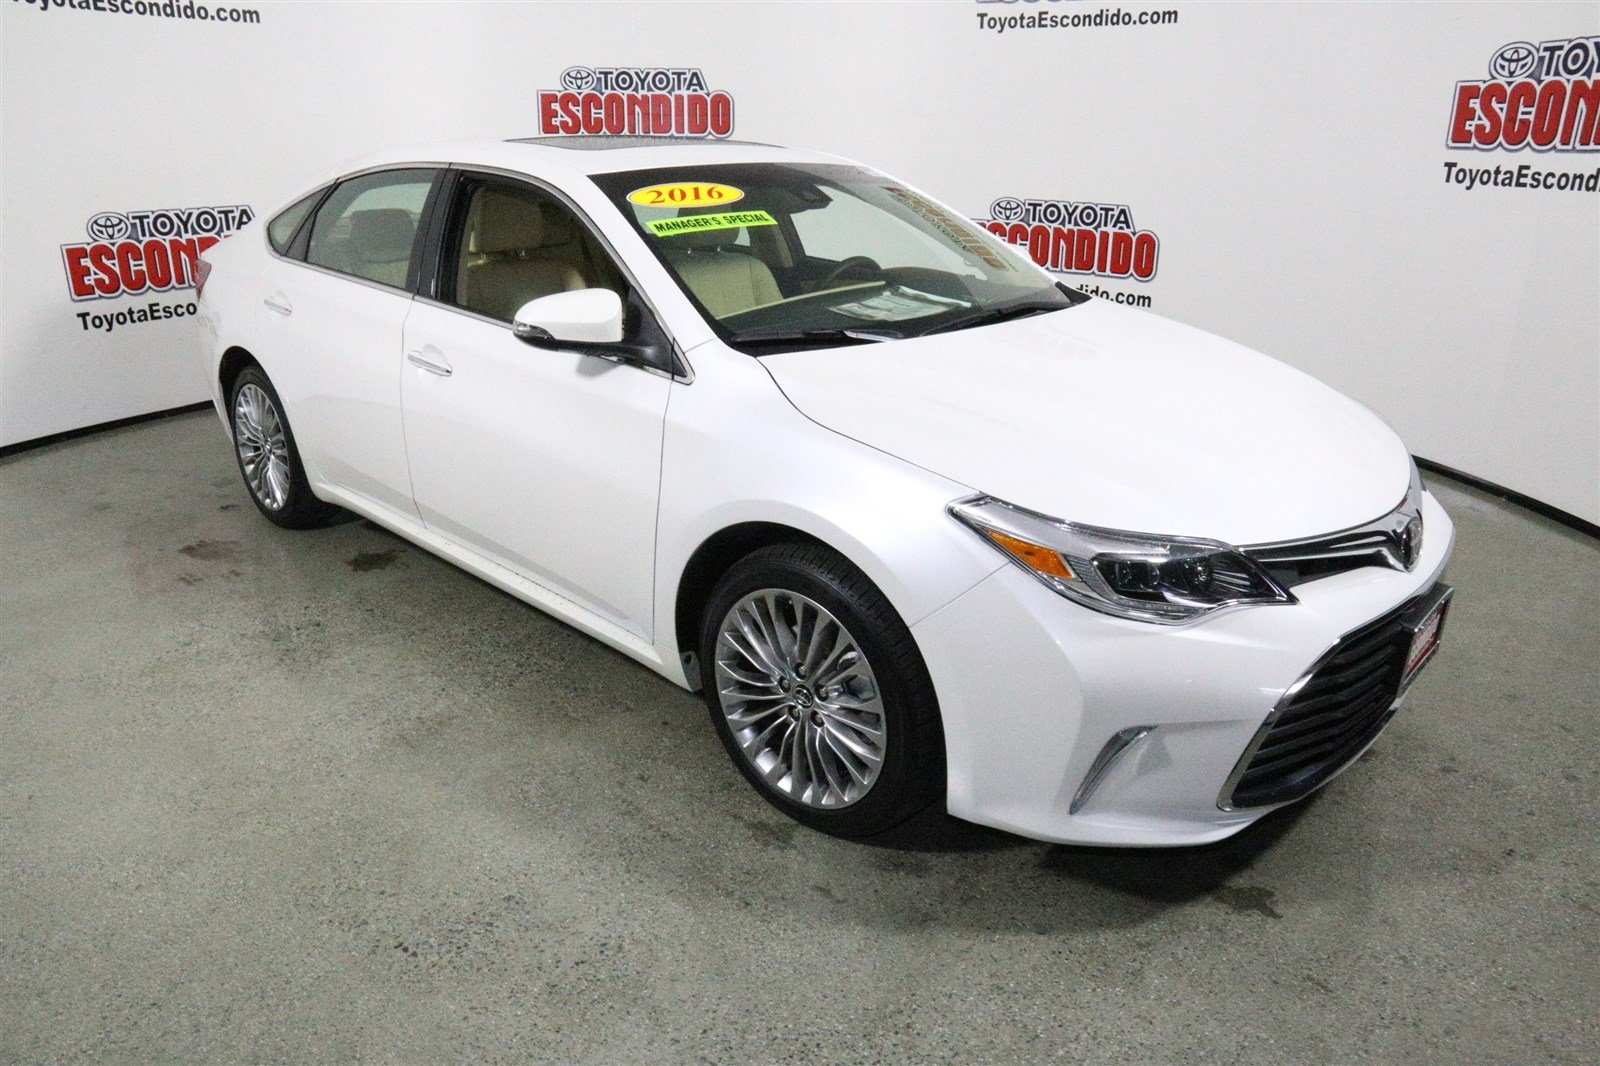 new 2016 toyota avalon limited 4dr car in escondido. Black Bedroom Furniture Sets. Home Design Ideas